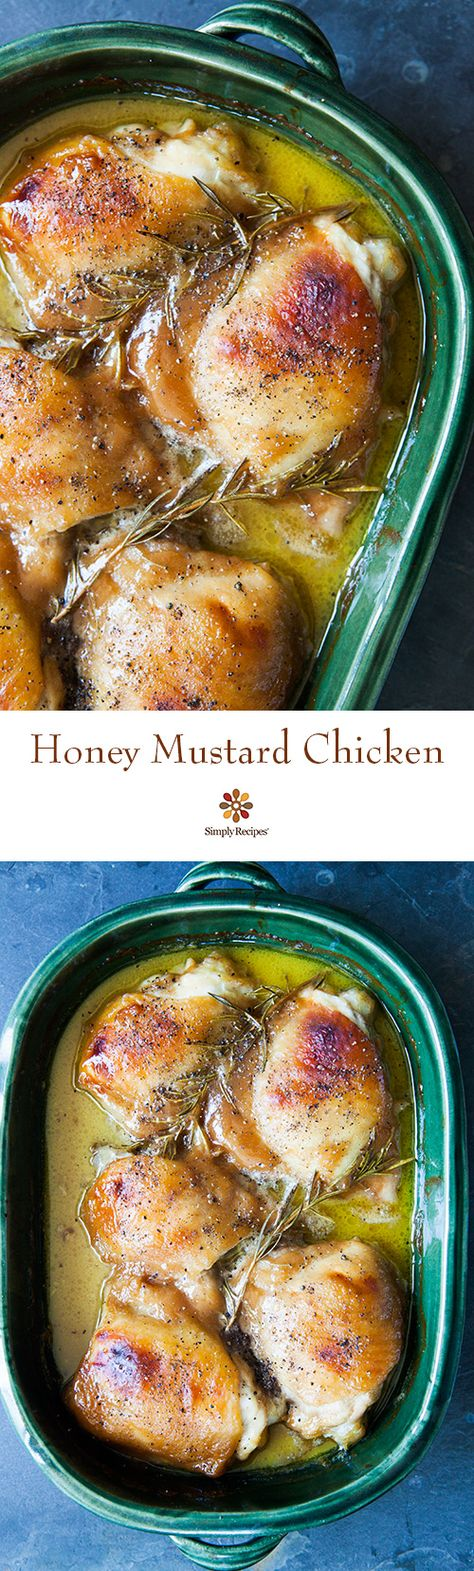 Couldn't be easier, and so good! Honey, Dijon mustard, olive oil, chicken thighs, bake.